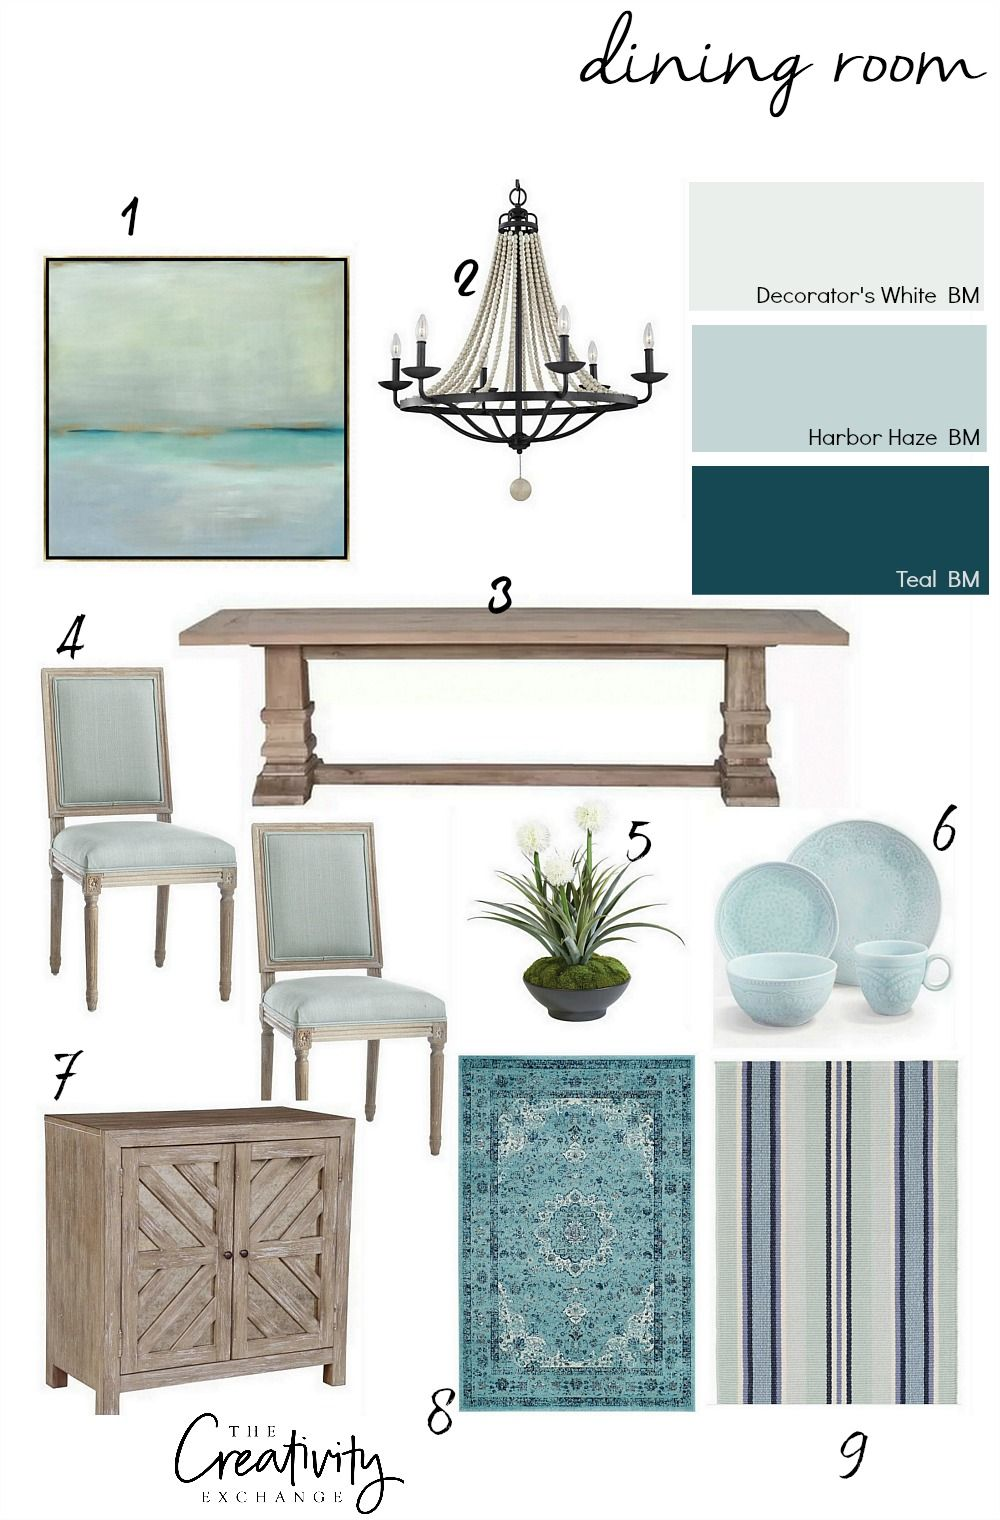 Layering a Transitional Dining Room Moody Monday is part of Neutral Living Room Transitional - It's time for another Moody Monday and today, I wanted to share some tips for layering a versatile dining room that key accent pieces can be easily switched out seasonally or when you're want to